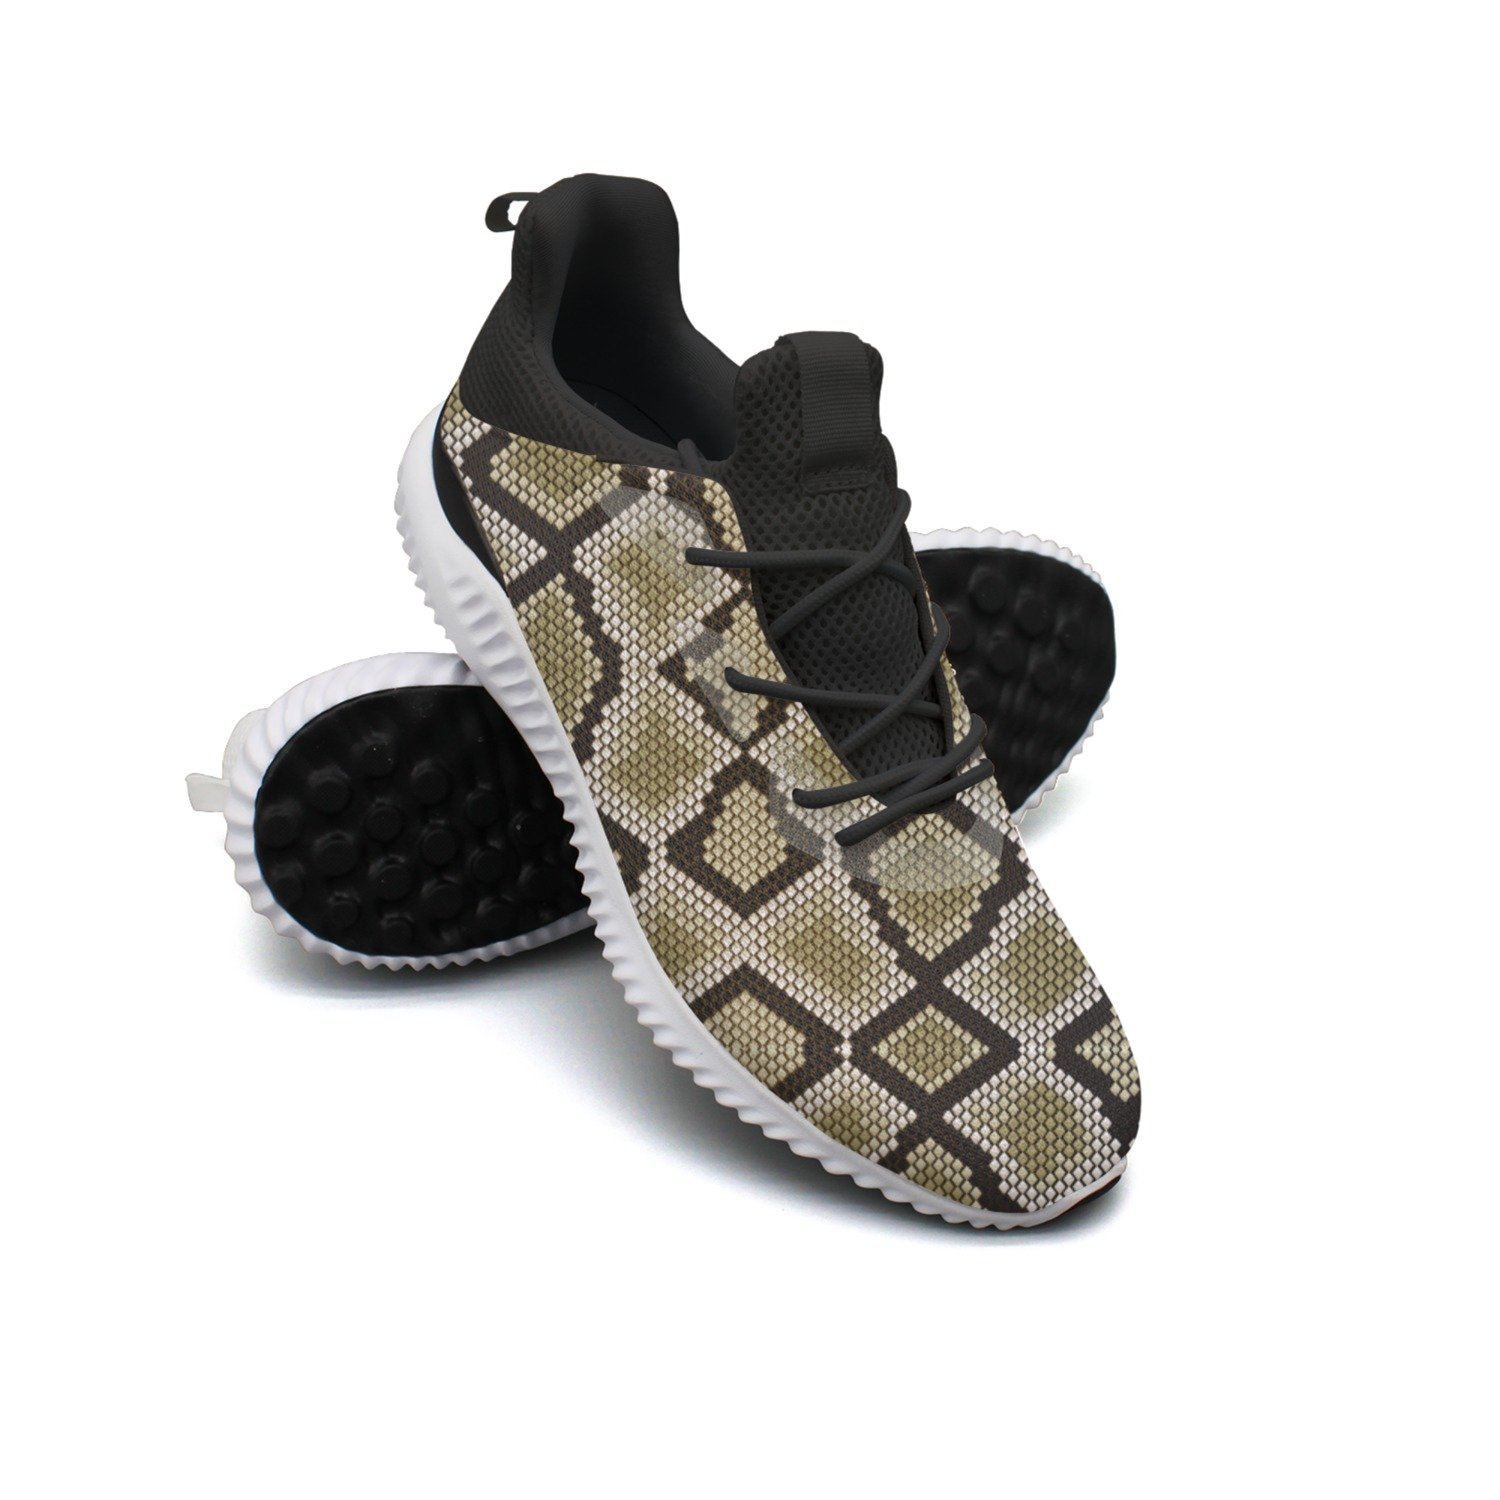 Snake Skin Care Leisure Casual Running Shoes Mens New Novelty Active